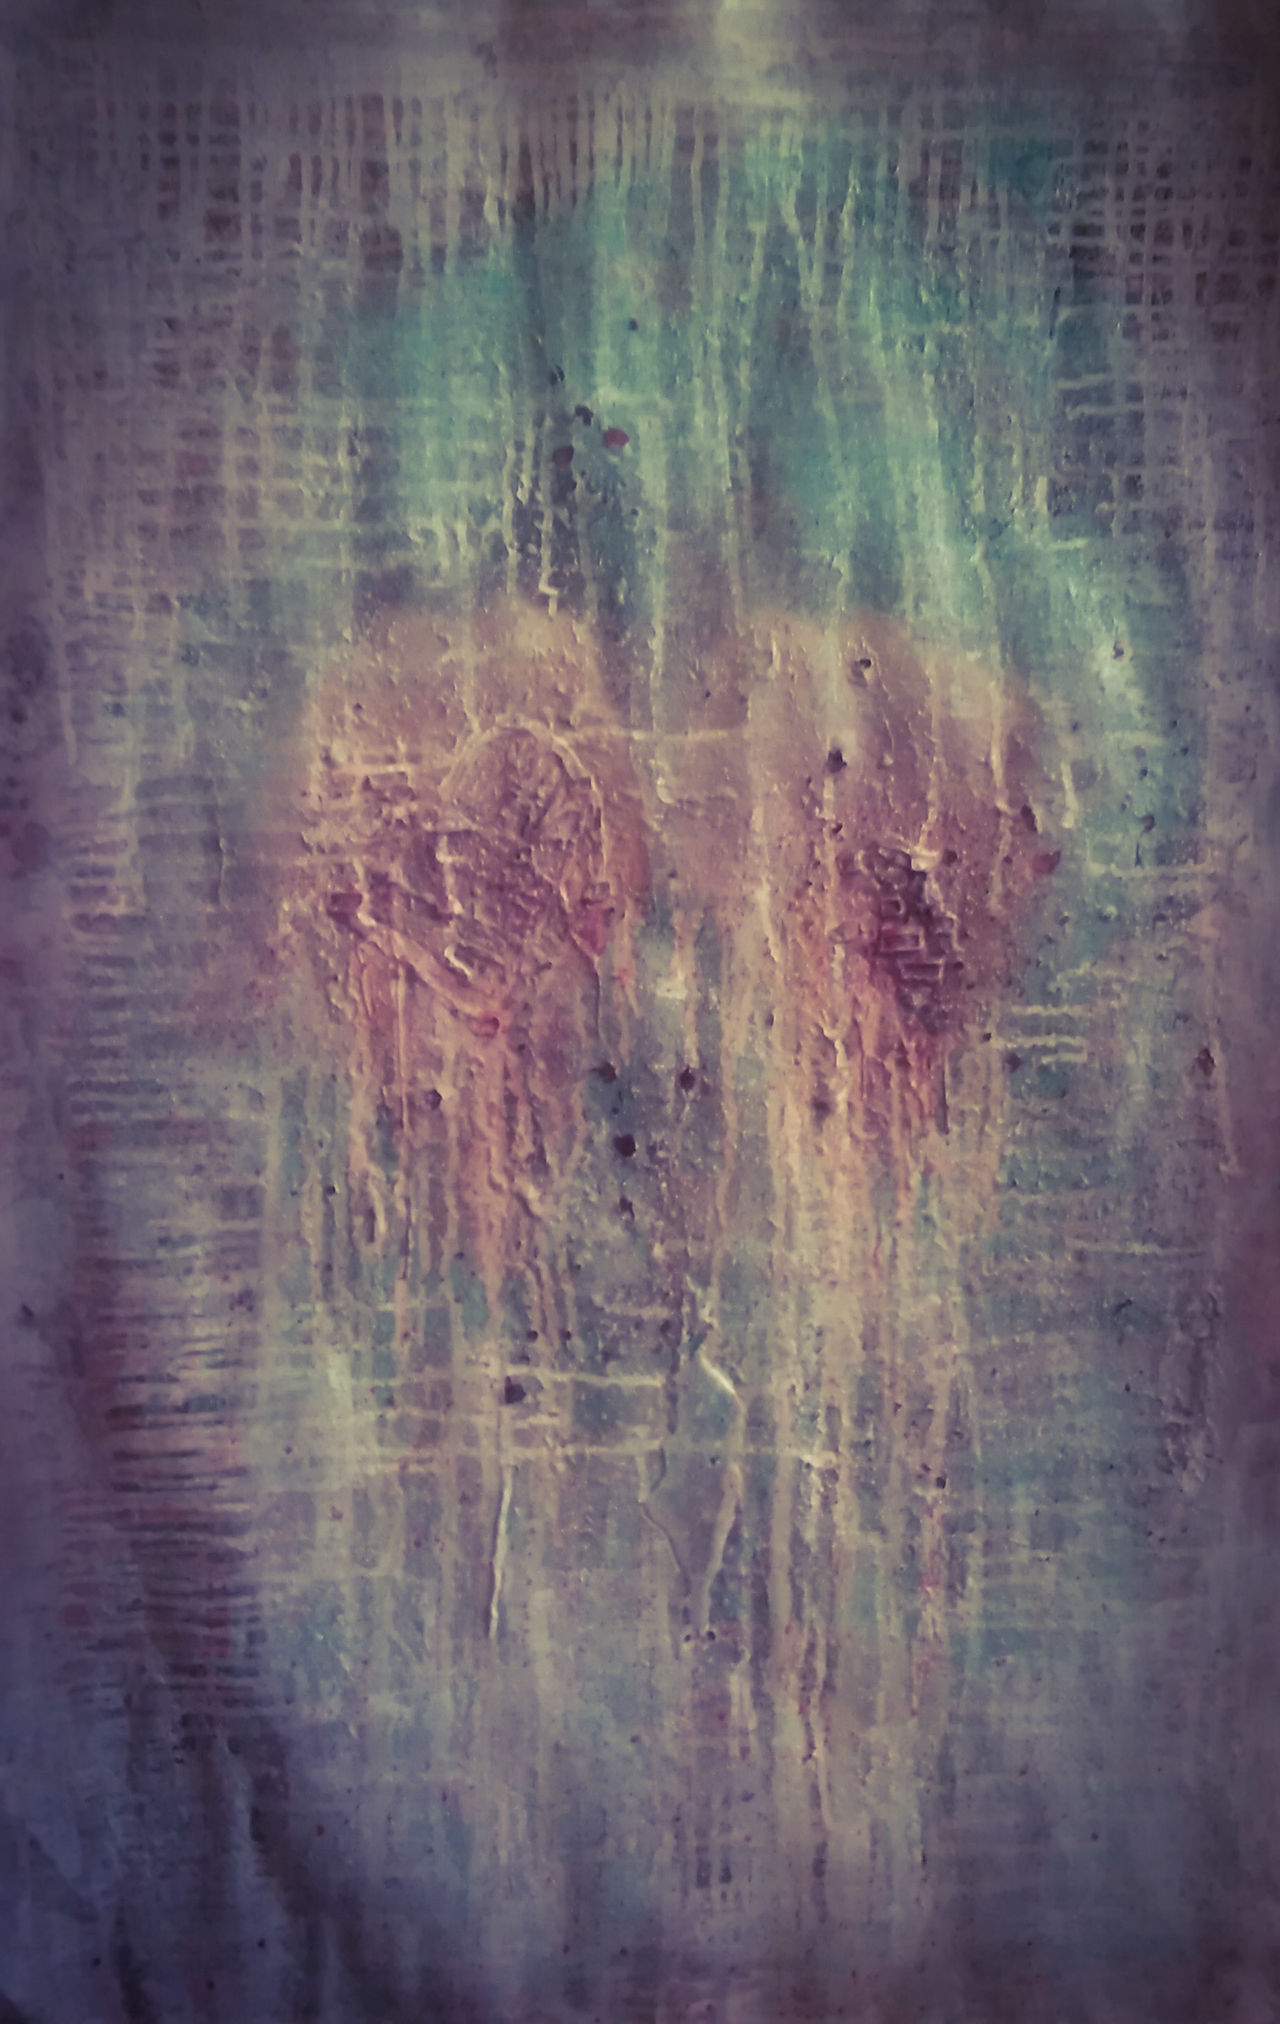 My newest painting. Psychic Medium Surrealism Illusion Art Abstract Surreal Abstract Art Light And Shadow Art And Craft Creativity Check This Out Occult Textured  Dreamlike No People Hierophant Gnosis  EyeEm Best Shots Textured  Ethereal All Seeing Eye Taking Photos Full Frame Art, Drawing, Creativity Channeled Artwork